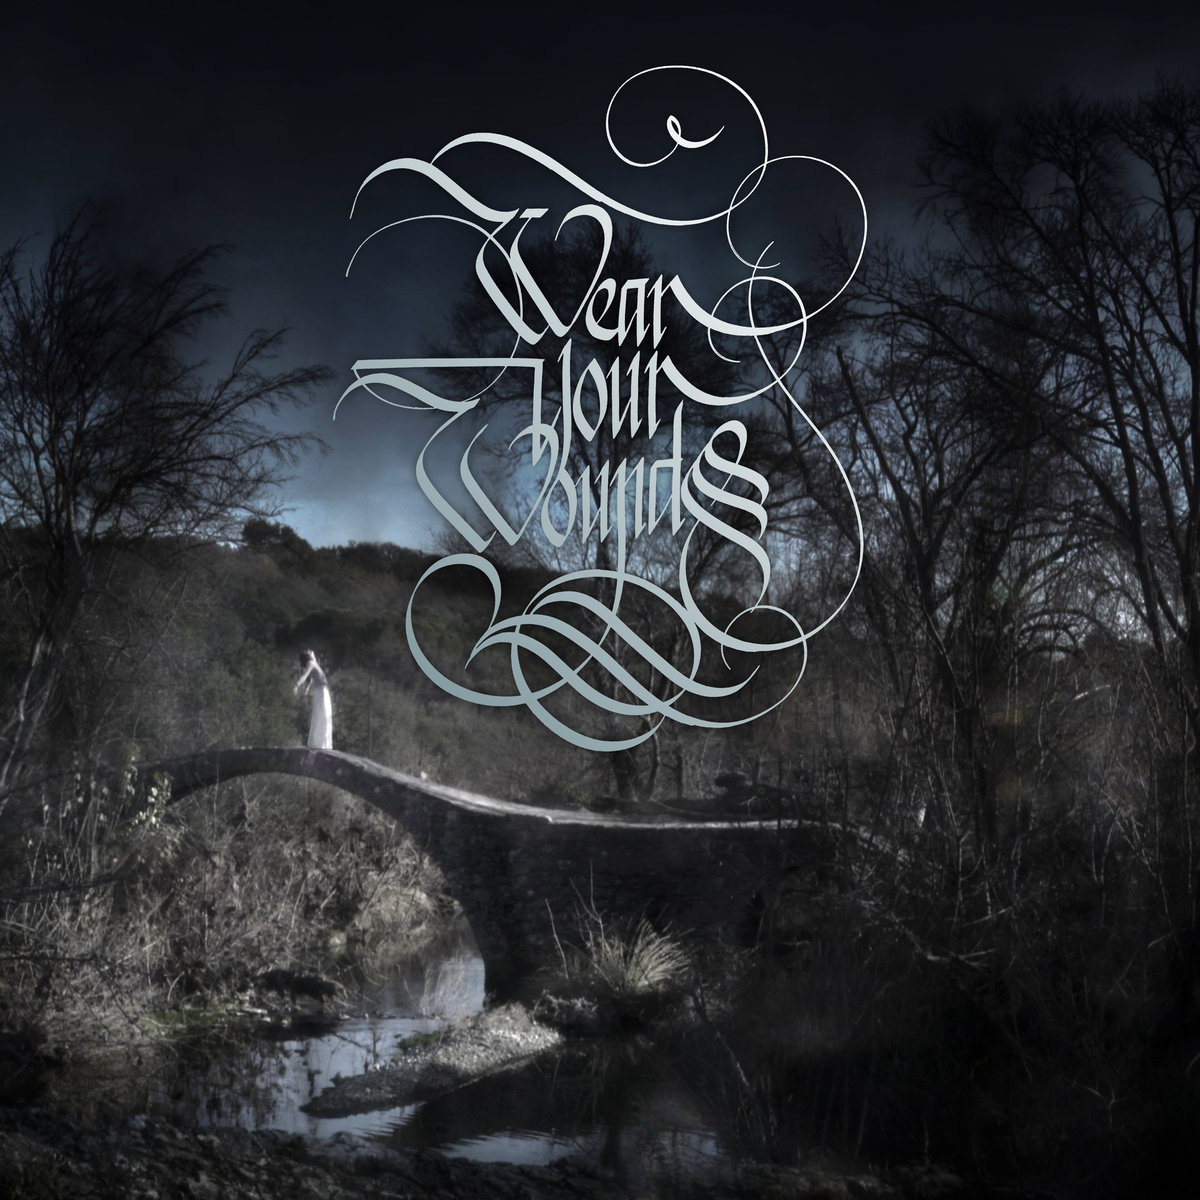 Wear Your Wounds - Rust on the Gates of Heaven 2xLP